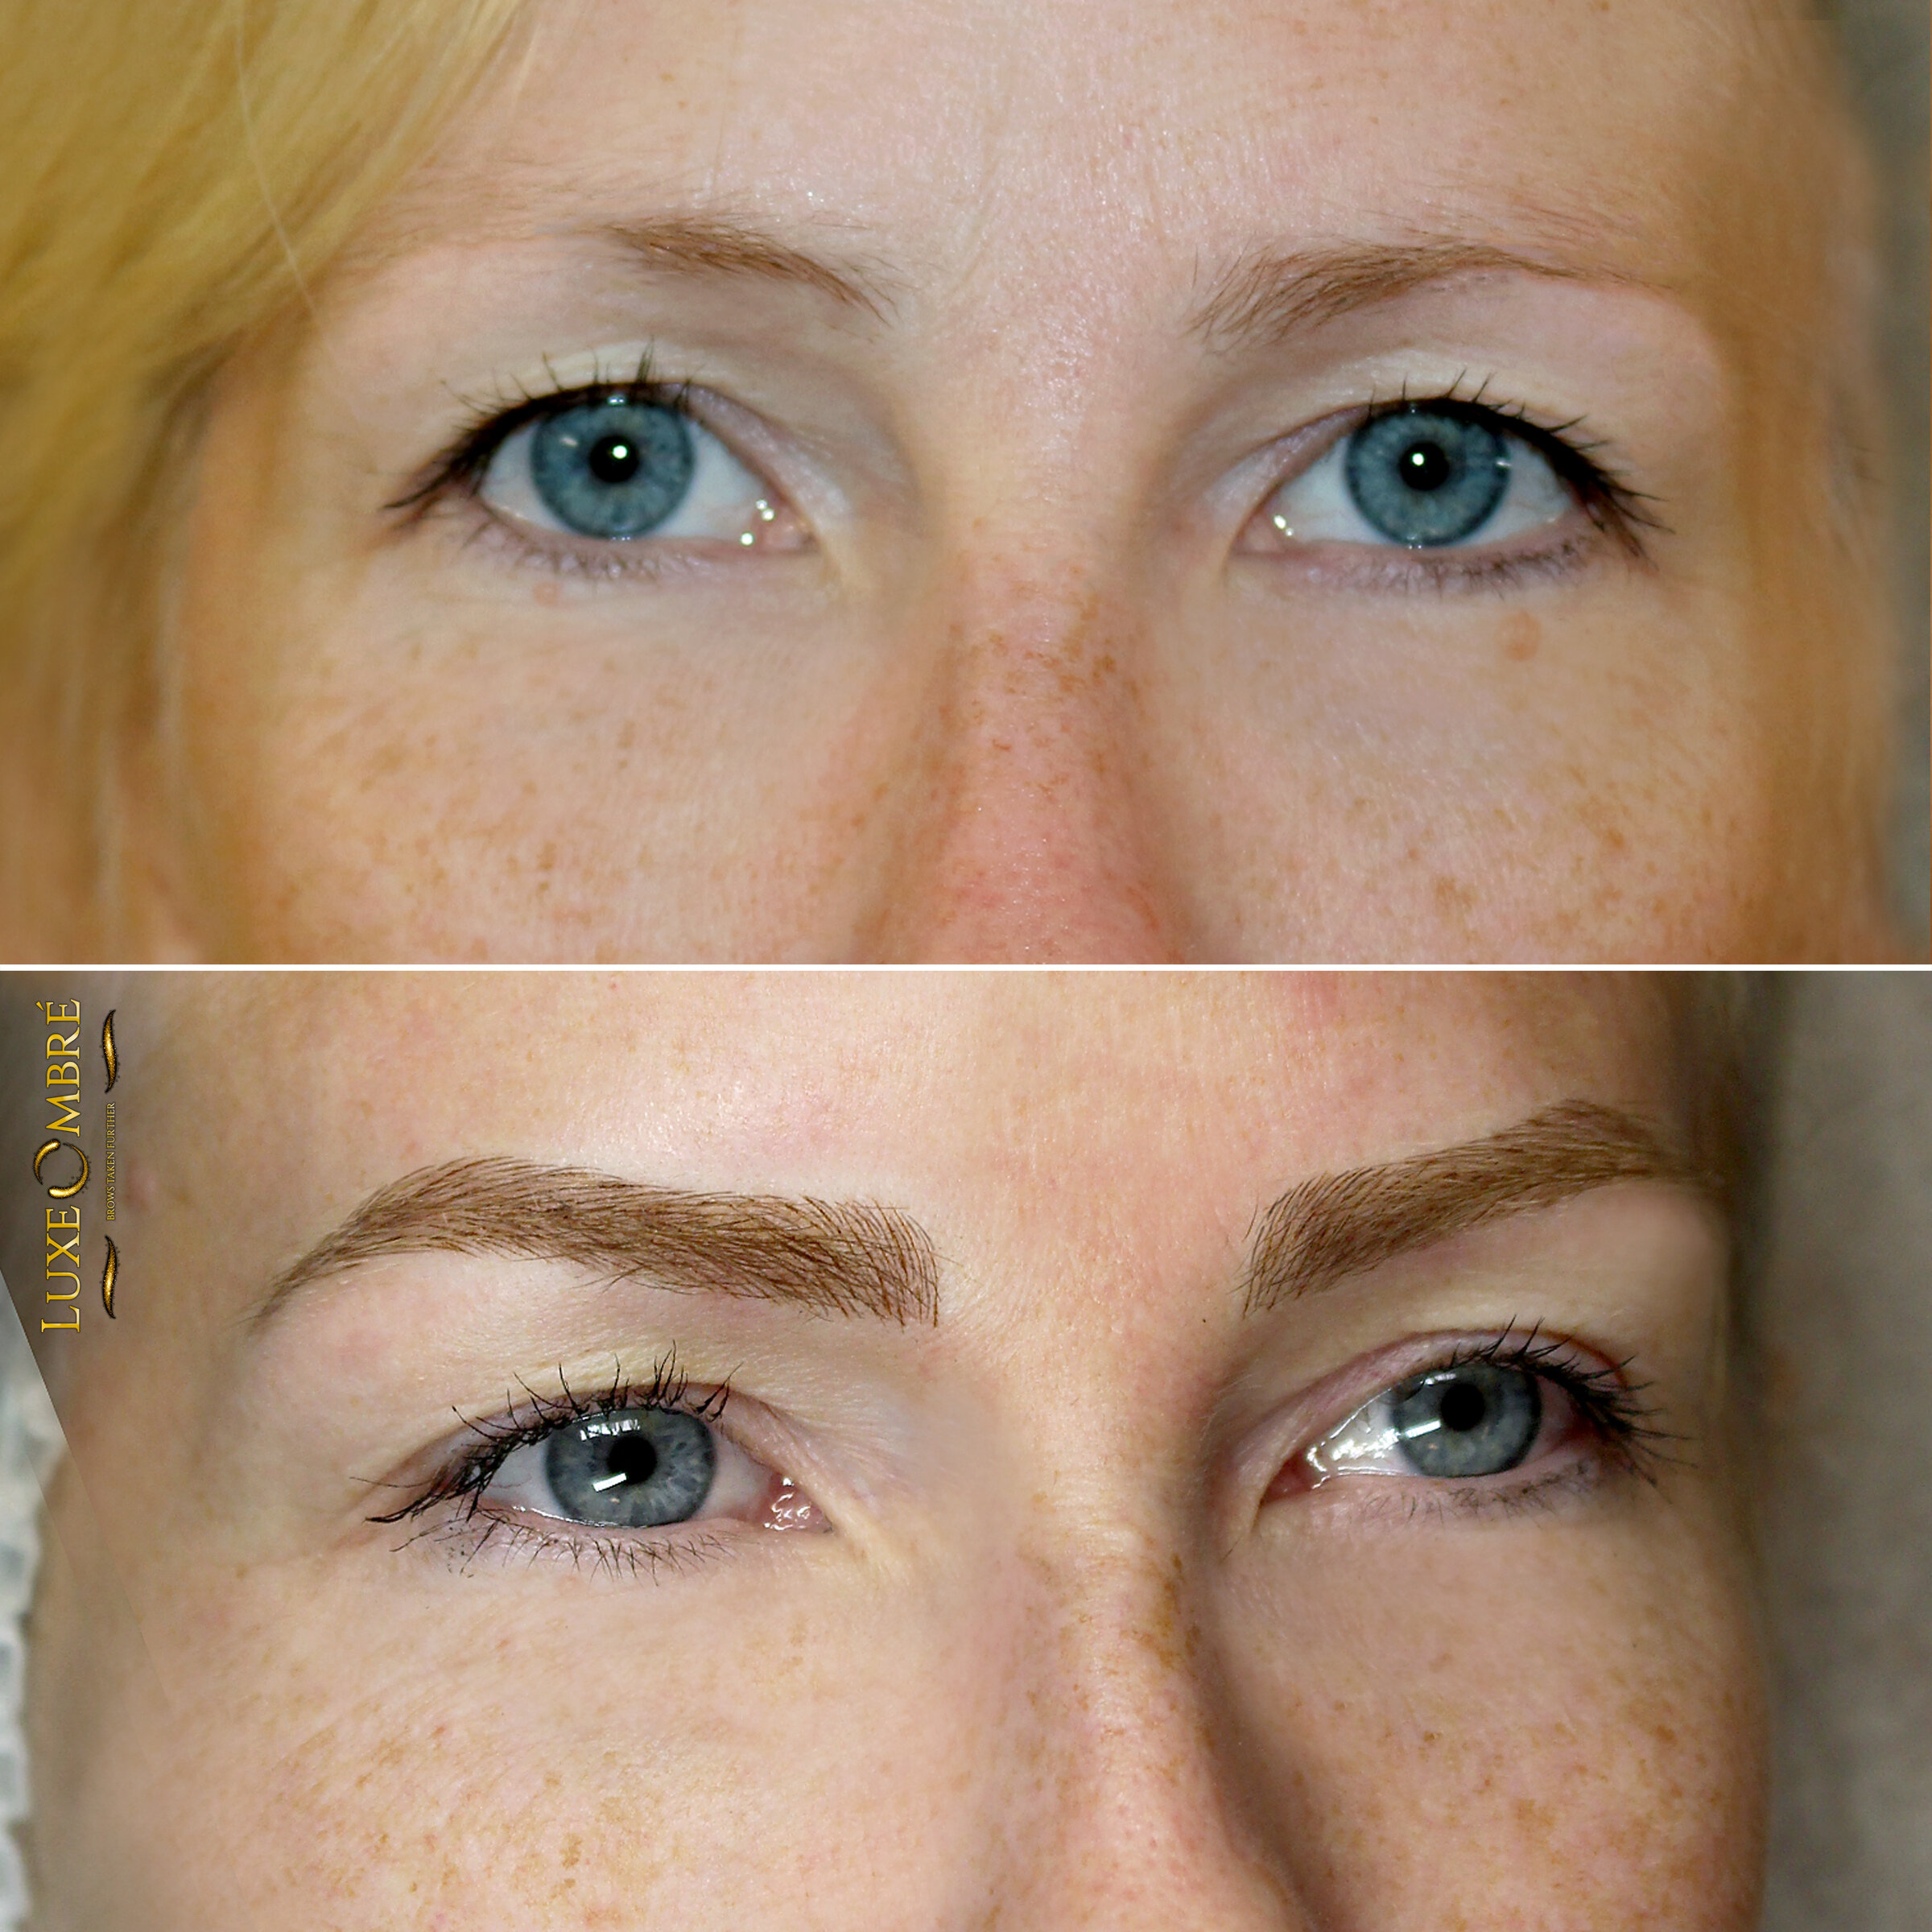 Another combination of LuxeOmbre and microblading - the two techniques that just compliment each other.